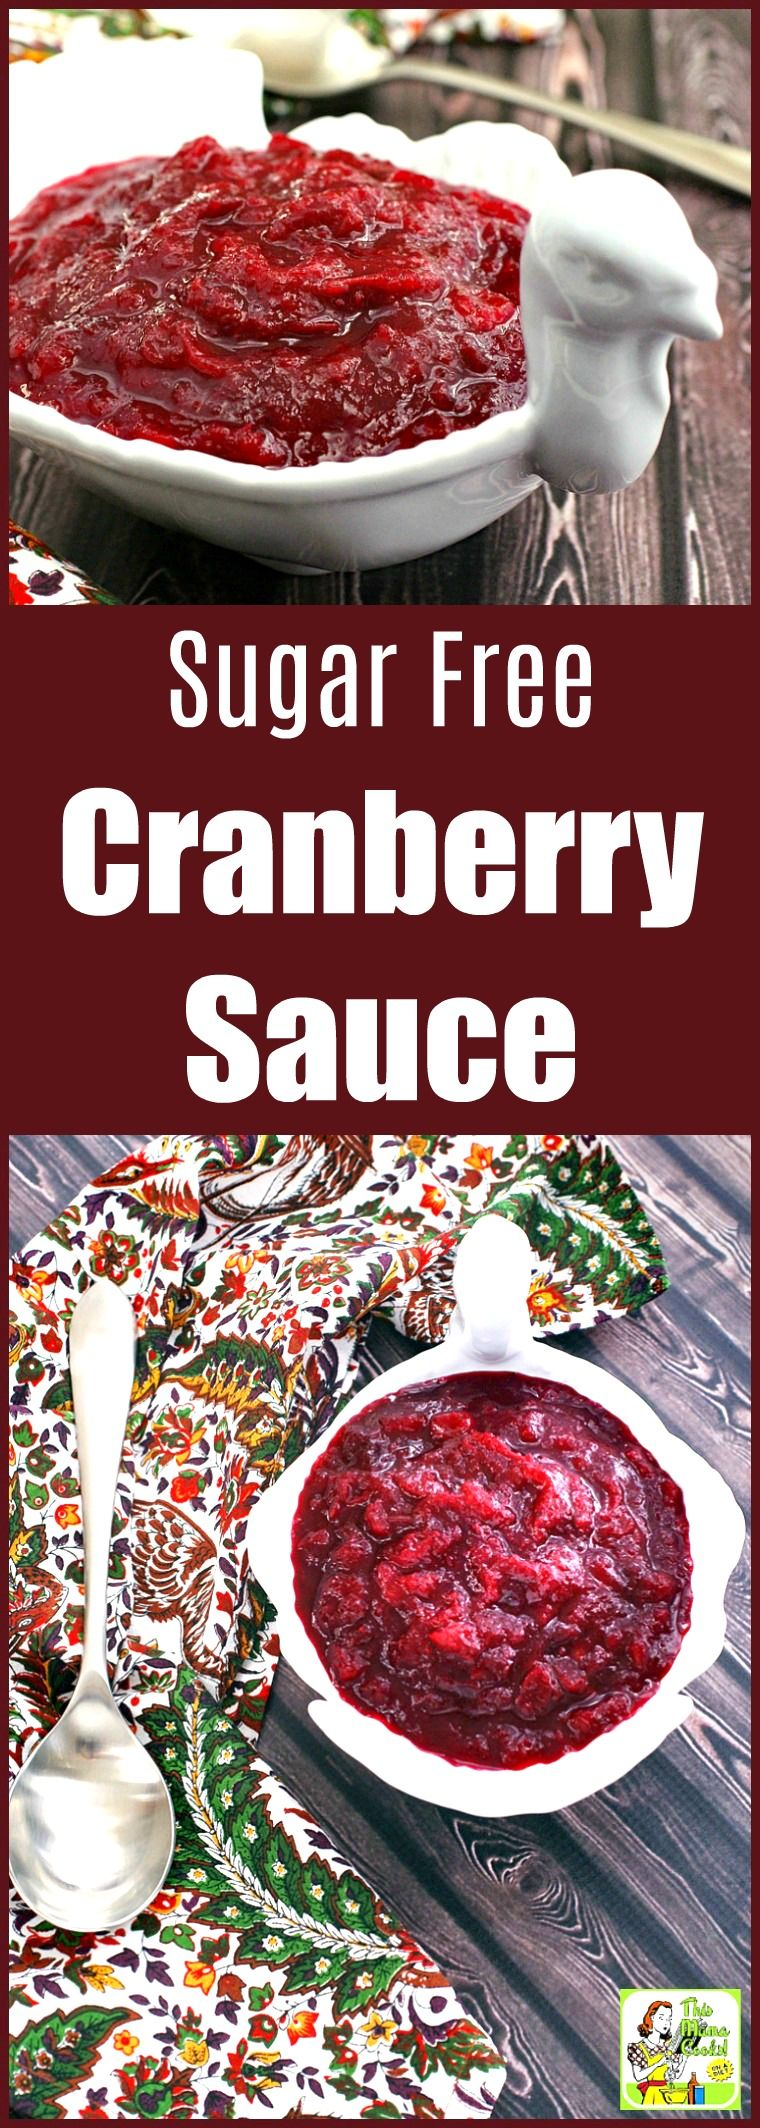 Make a batch of Sugar Free Cranberry Sauce for Thanksgiving. This keto cranberry sauce is fine for those on low carb or paleo diets, too. This no-sugar cranberry sauce recipe can be made with Swerve or powdered monk fruit sweetener. #recipeoftheday #easyrecipe #easyrecipes #cranberries #keto #ketorecipes #ketodiet #paleo #paleodiet #lowcarb #lowcarbrecipes #lowcarbdiet #sugarfree #cranberry #cranberries #Thanksgiving #cranberrysauce